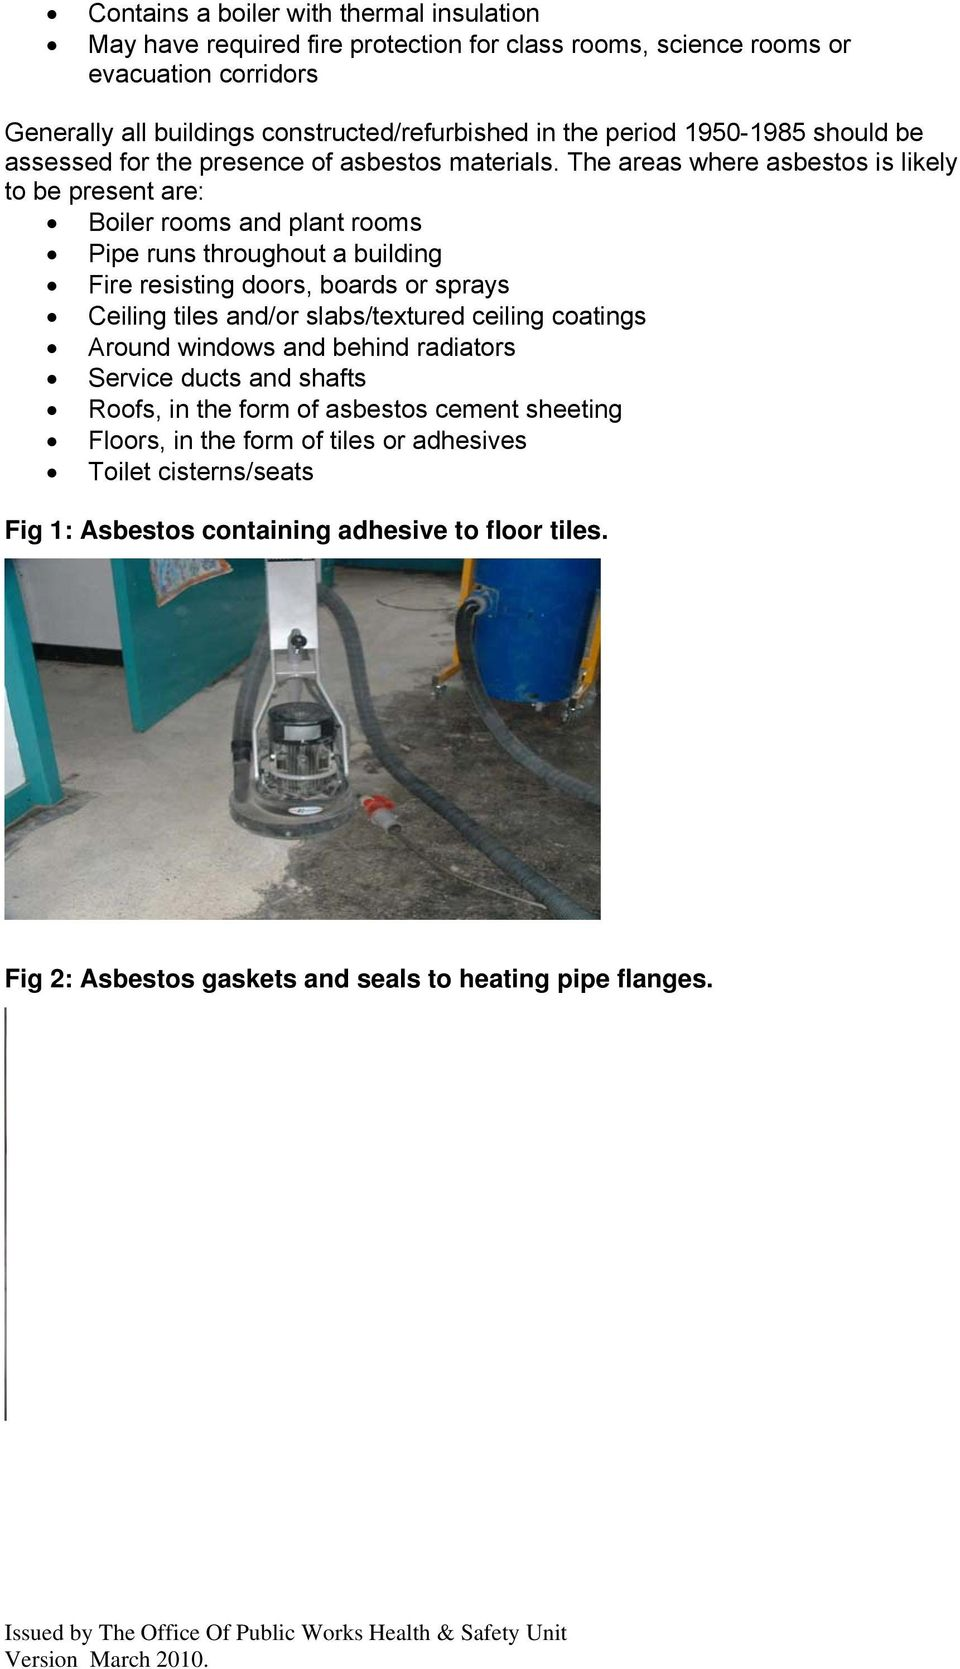 The areas where asbestos is likely to be present are: Boiler rooms and plant rooms Pipe runs throughout a building Fire resisting doors, boards or sprays Ceiling tiles and/or